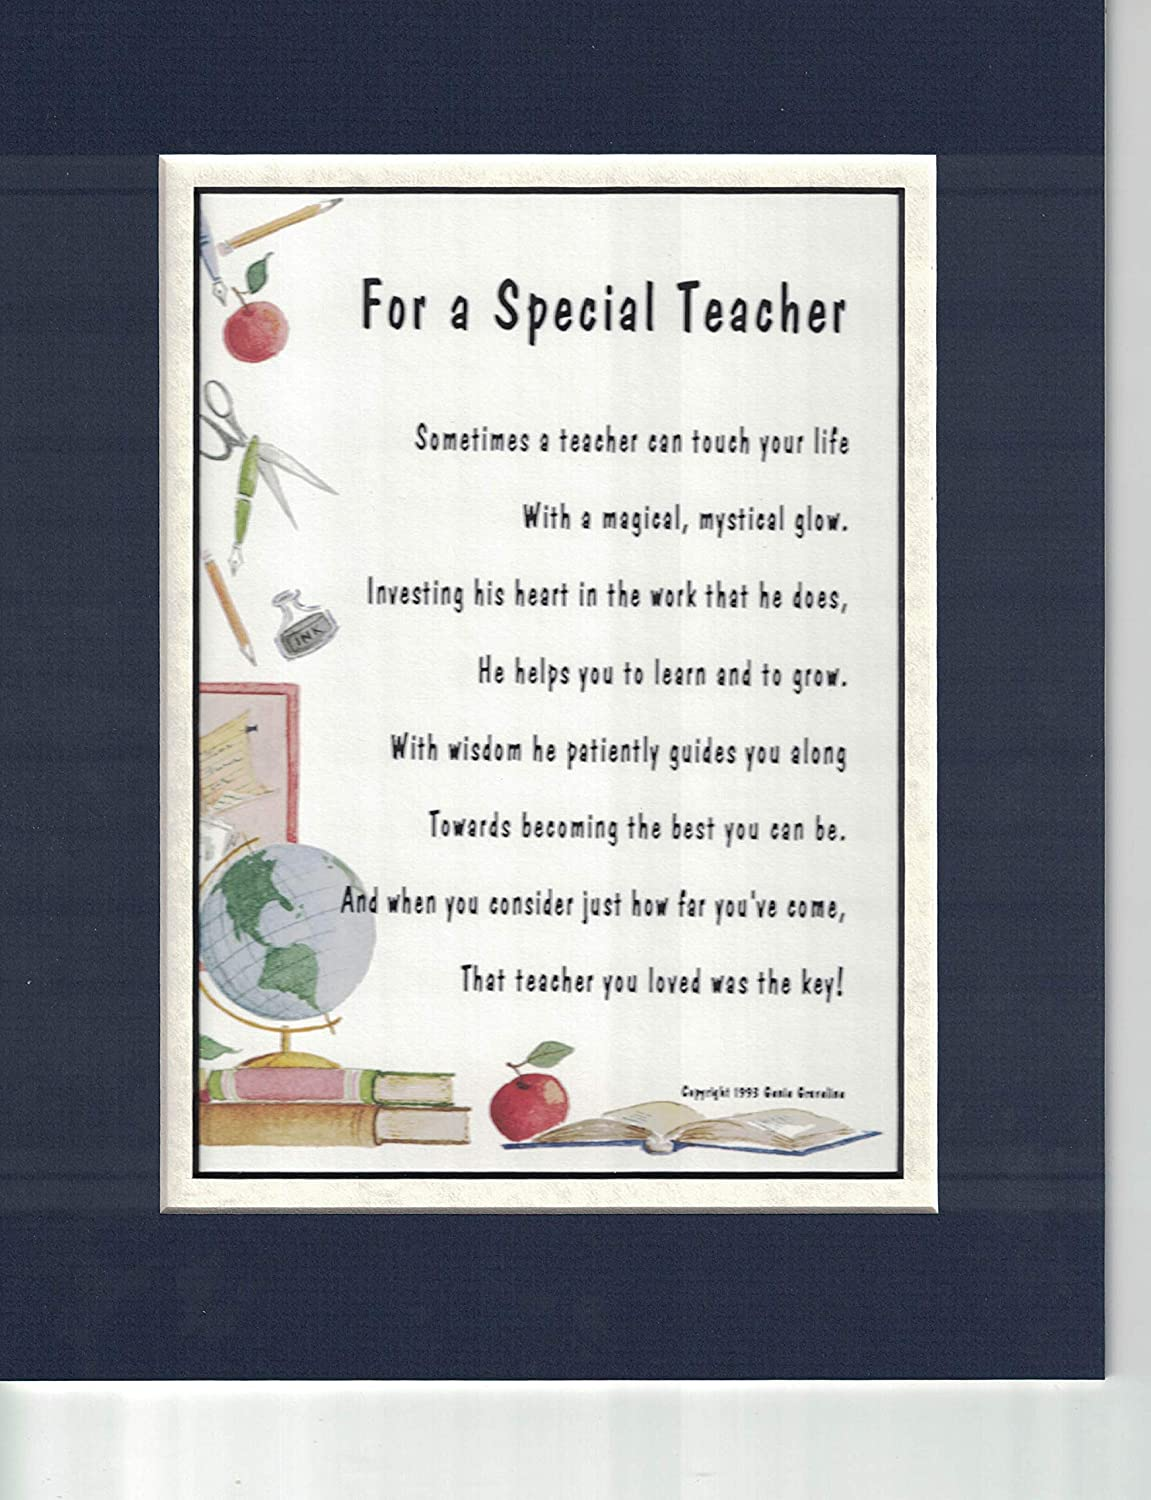 A Thank You Gift Present Poem For A Special Teacher 171 Male